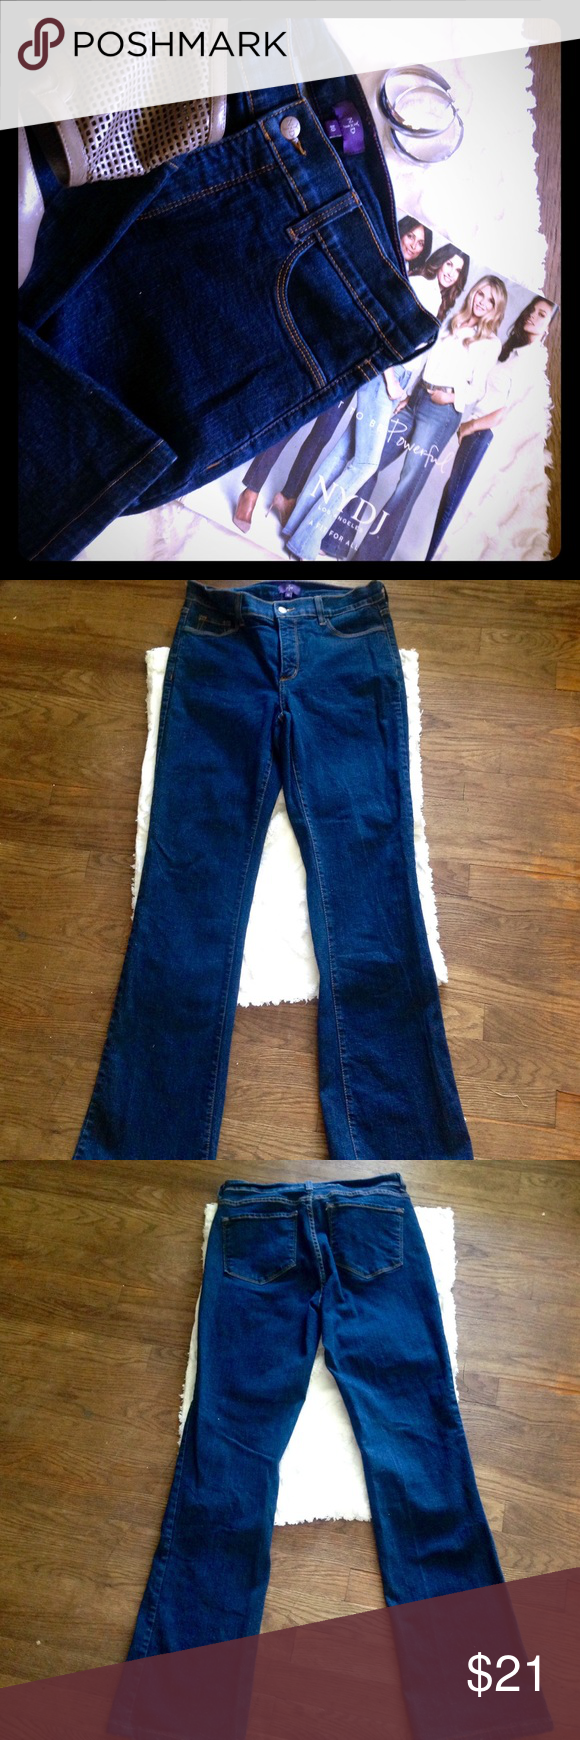 """Not your daughters jeans NYJD, dark denim boot cut Dark denim boot cut jeans by NYDJ (not your daughters jeans). Worn once, excellent condition! Featured in last minutes of Vogue magazine three times. Size 10 and I believe long although it doesn't say, but I'm 5'9"""" tall and they were long enough for me. Reminder 30% off on my bundles of just a minimum of two or more items. Bundle up and save on shipping this includes any offers you may bring to me. NYDJ Jeans Boot Cut"""